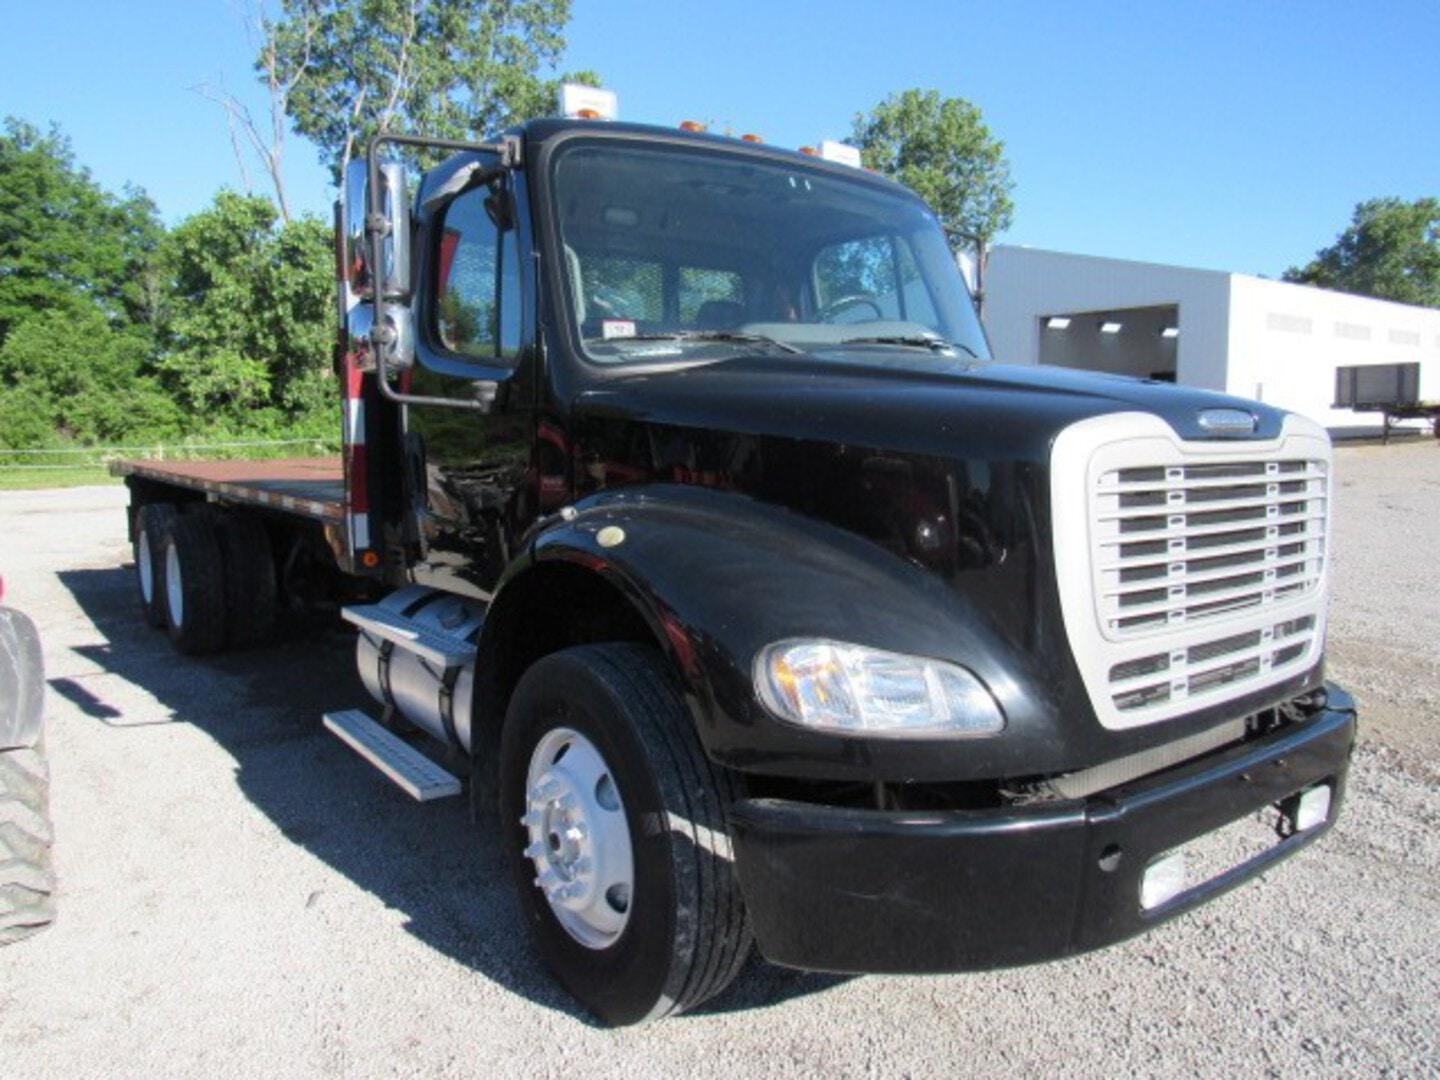 Used, 2010, Freightliner, M2 112 Business Class, Flatbed Trucks